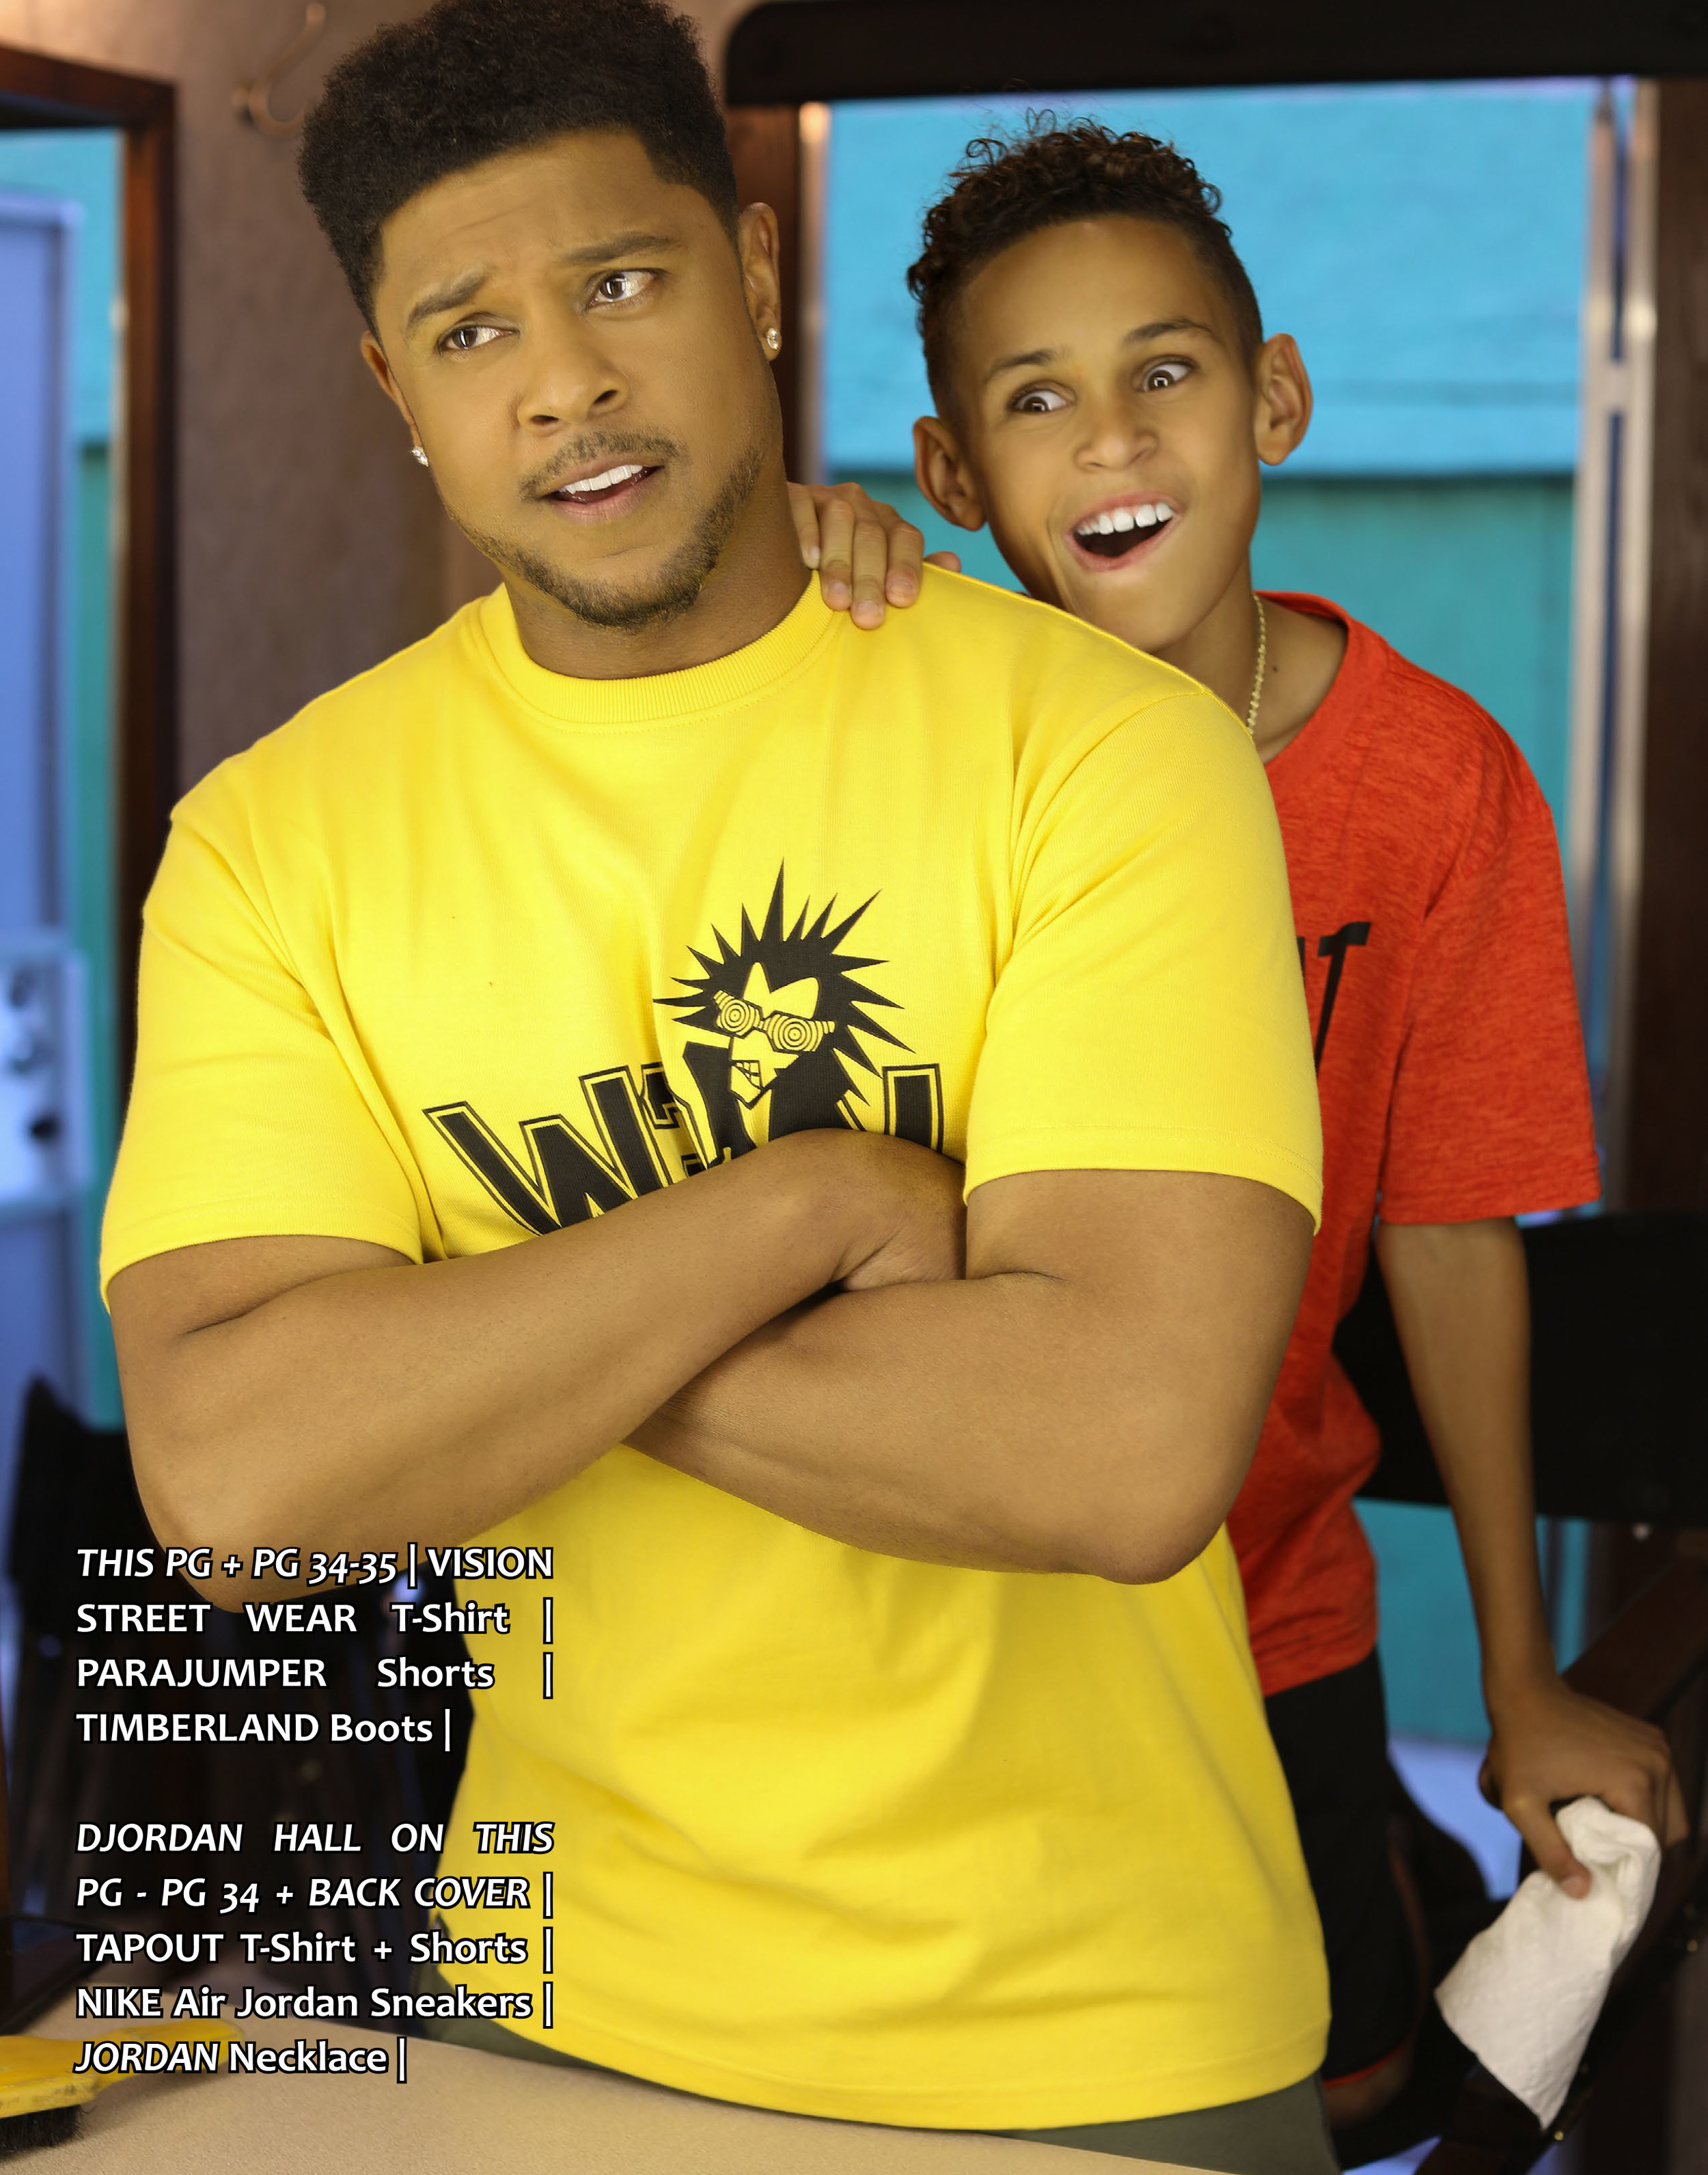 AM JUN HITTING THE STREETS WITH POOCH HALL-9.jpg